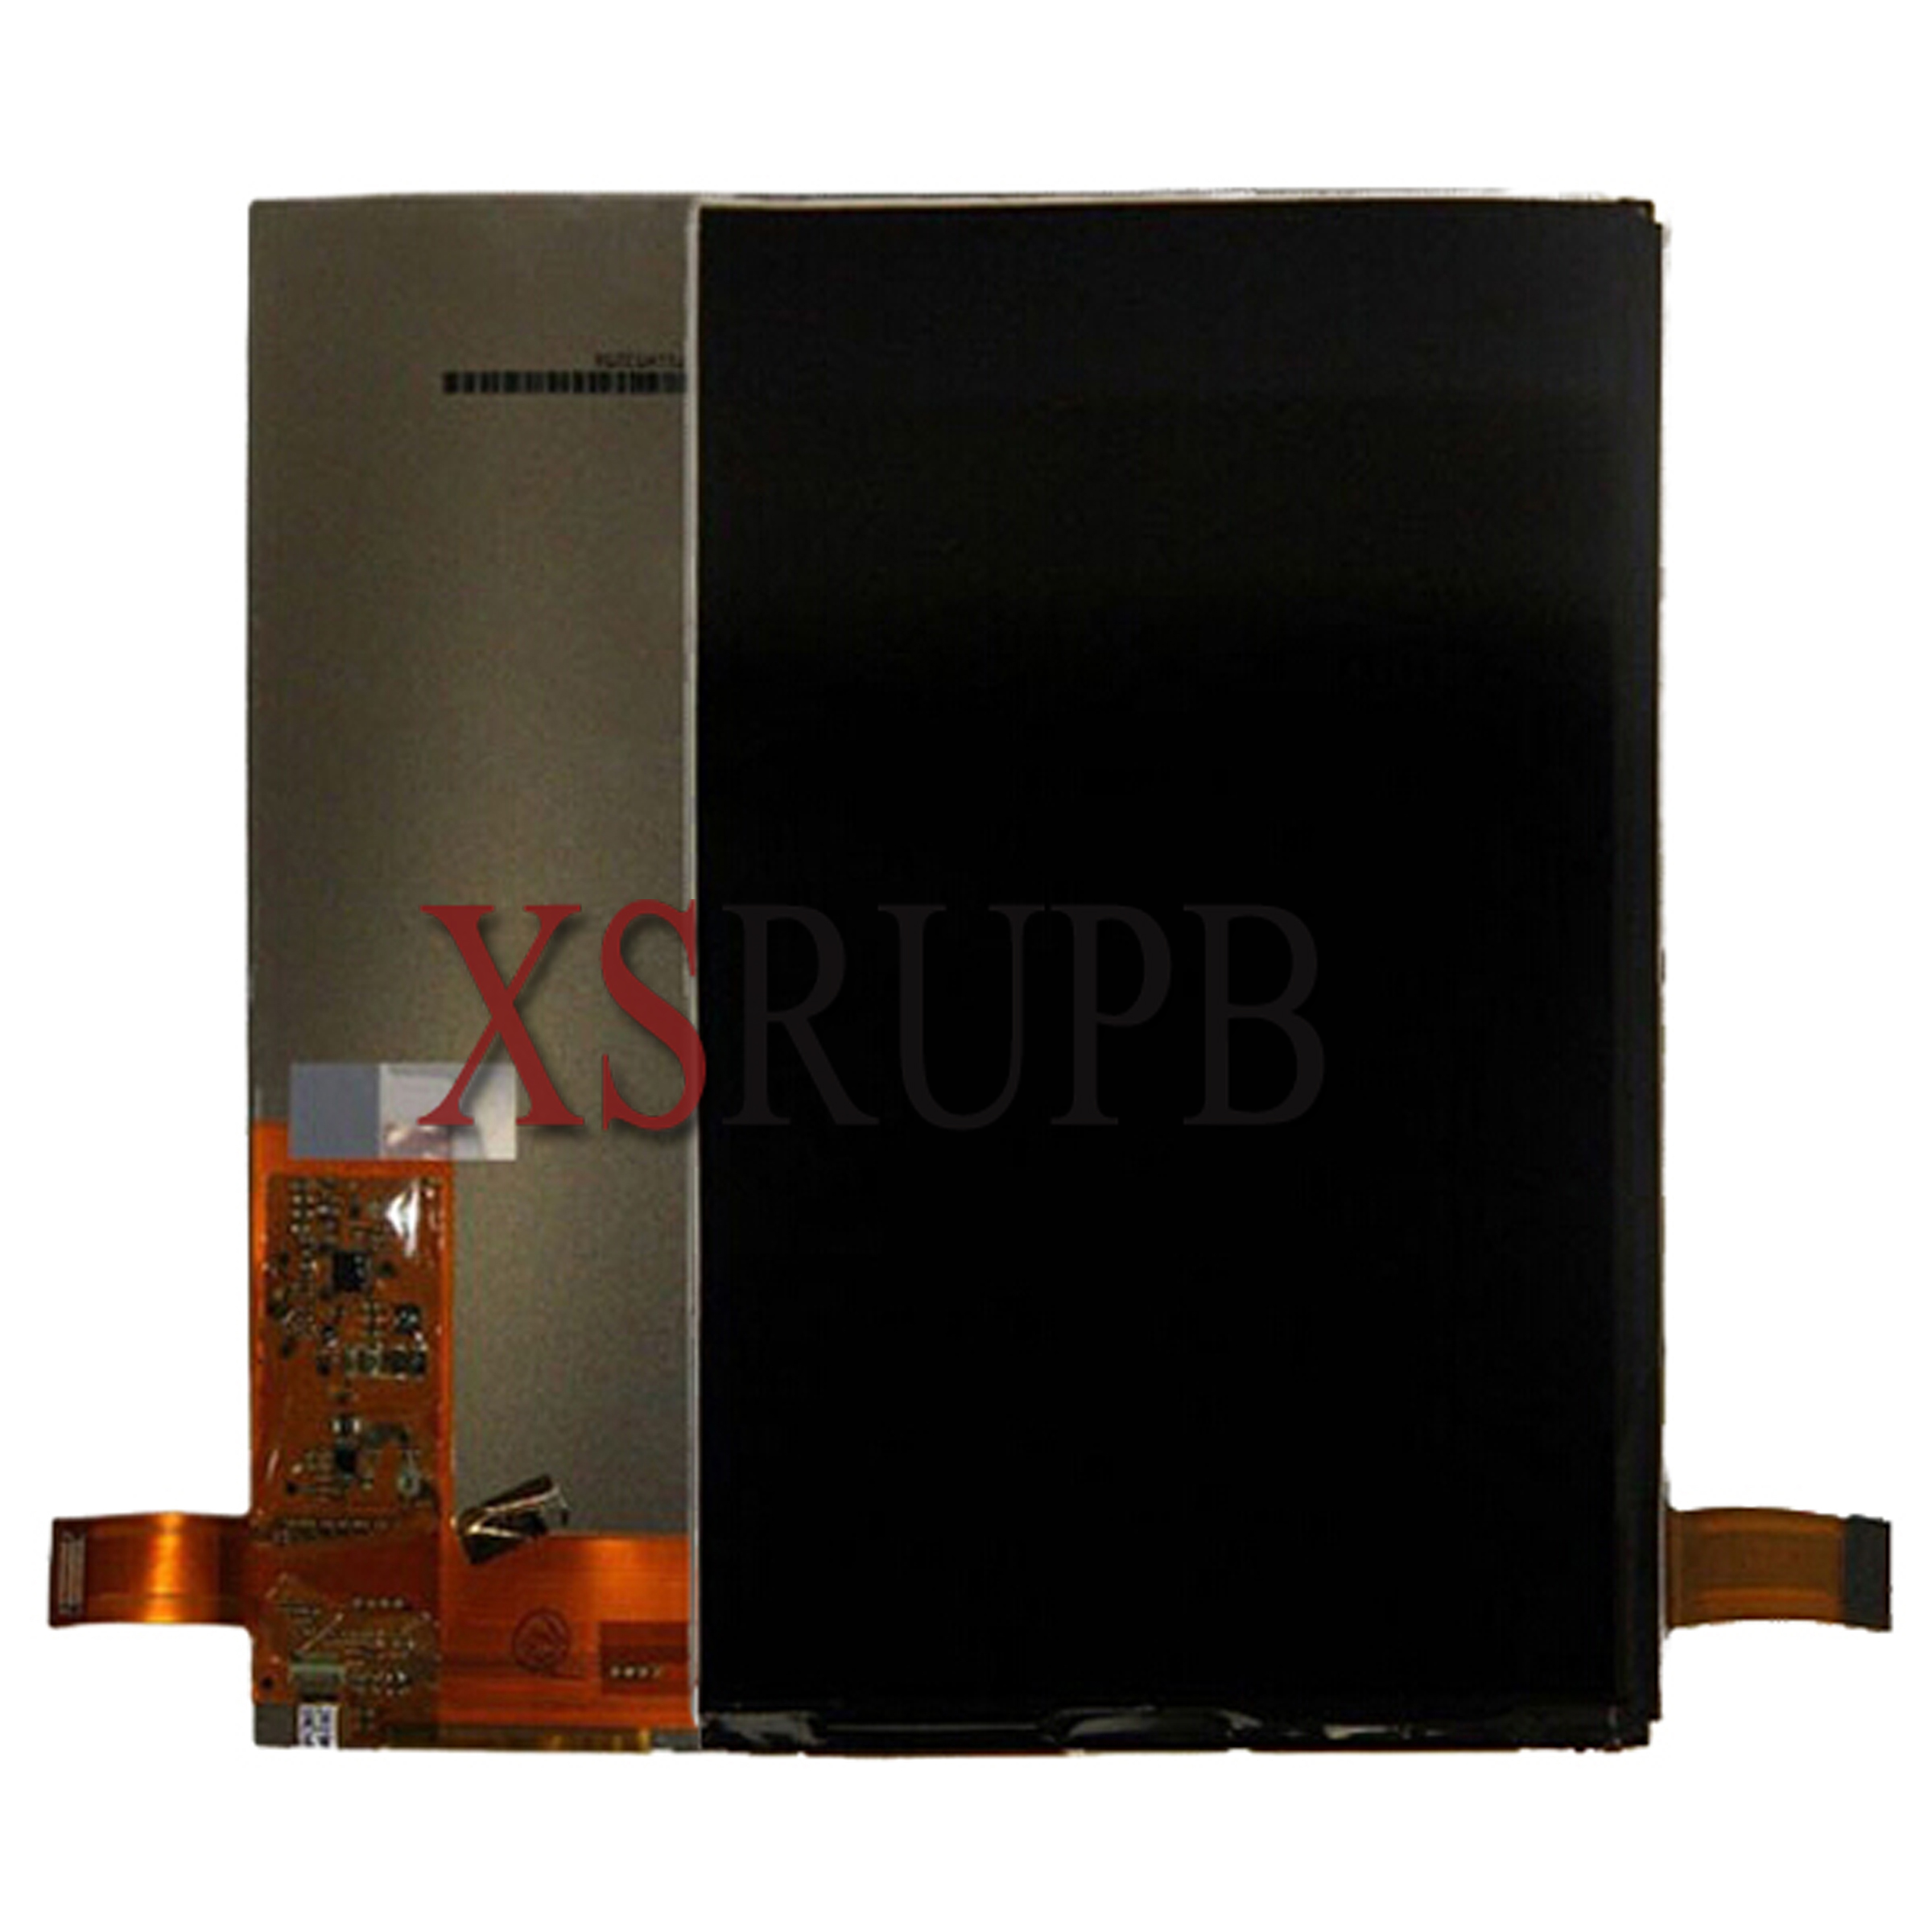 New LCD Display 7 inch PRESTIGIO MULTIPAD WIZE 3787 3G PMT3787 3G TABLET LCD Screen Panel Lens Frame replacement Free Shipping